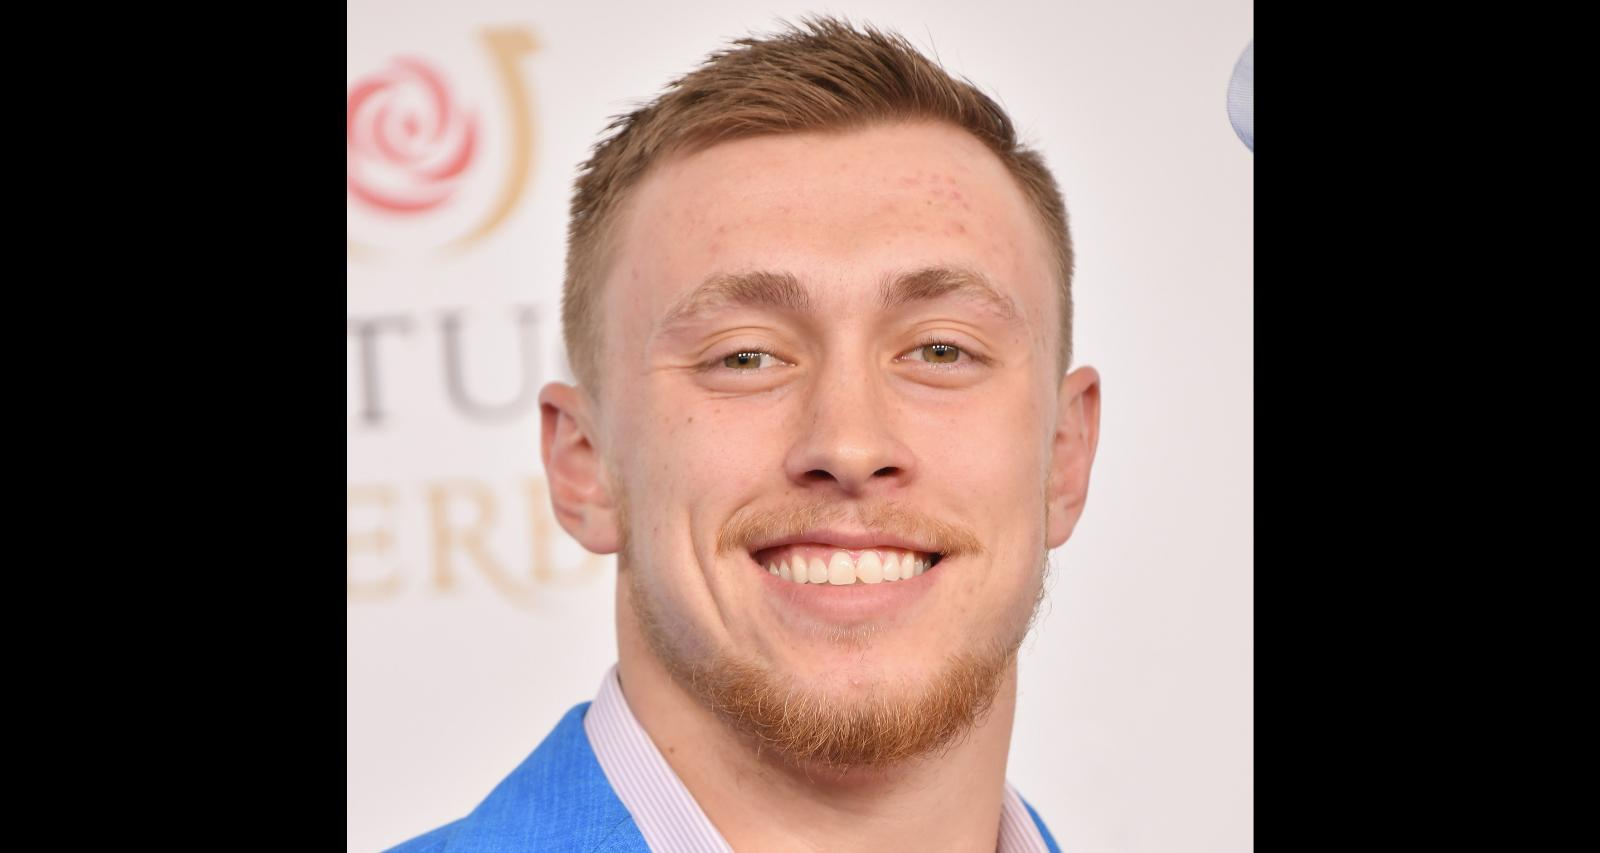 George Kittle's Fiancee is Claire Till